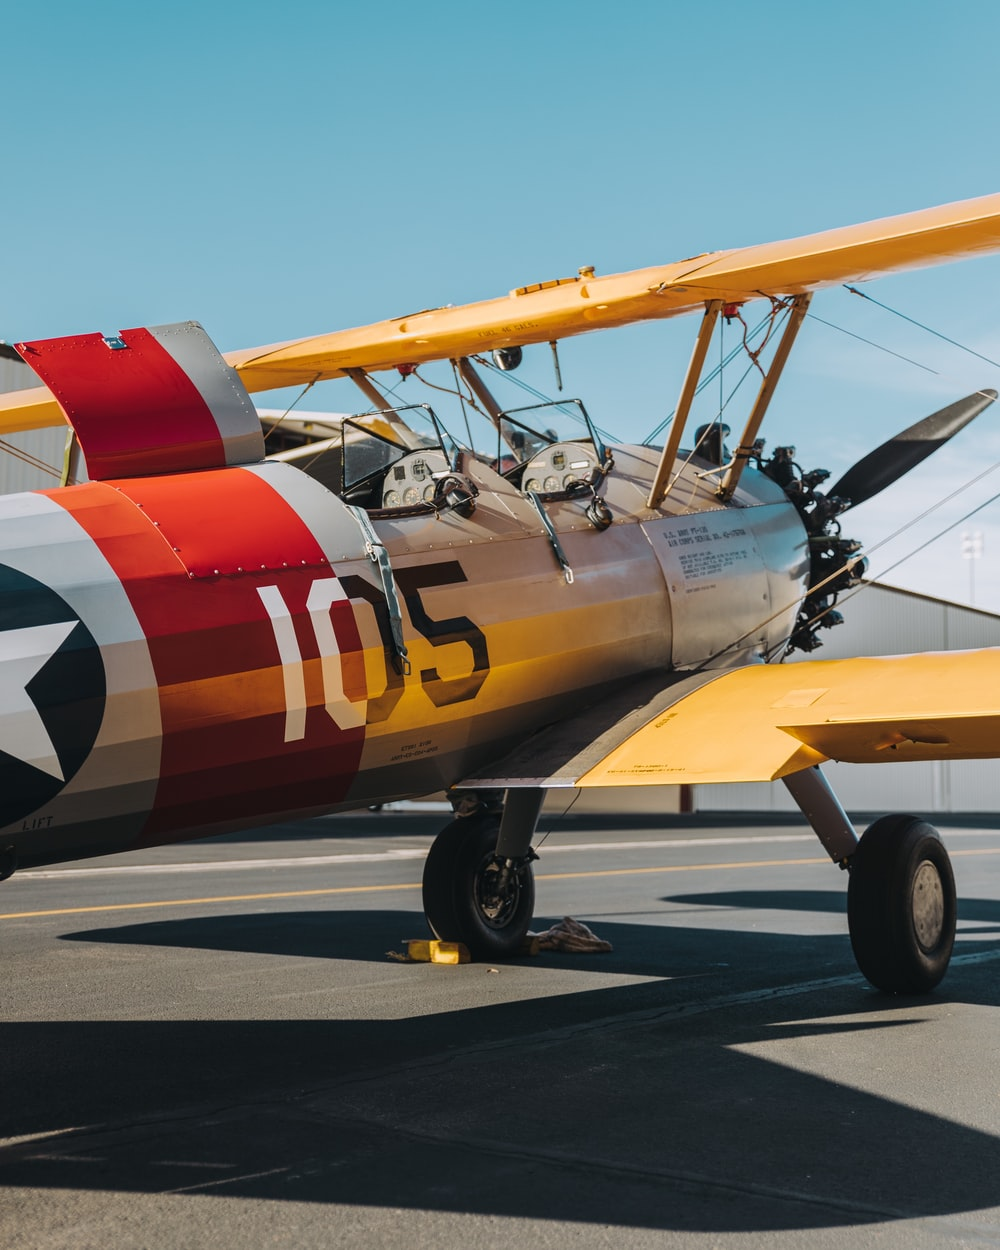 yellow, red, and white biplane